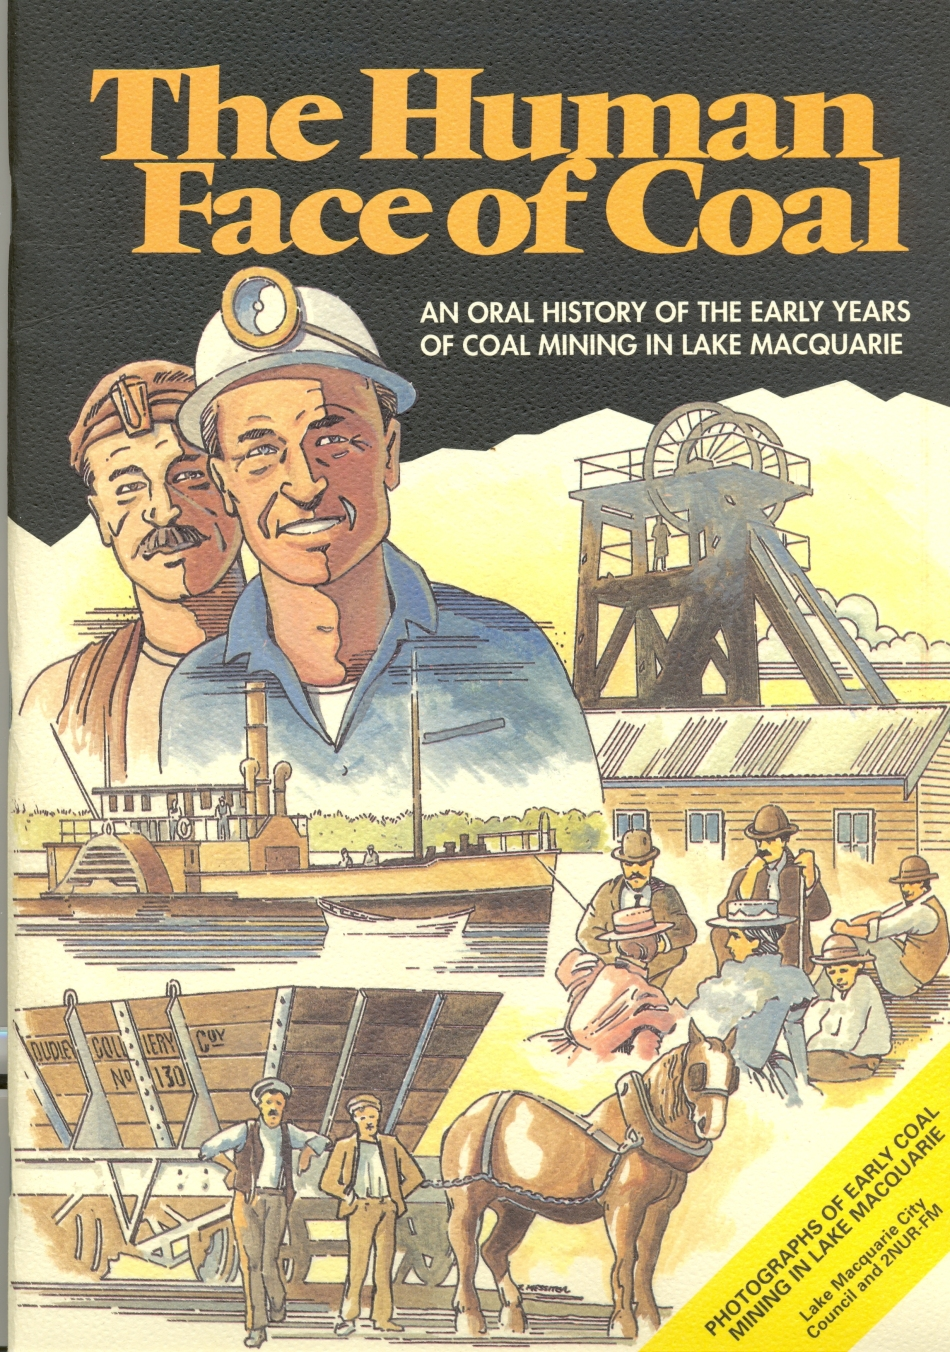 The Human Face of Coal: an oral history of the early years of coal mining in Lake Macquarie.